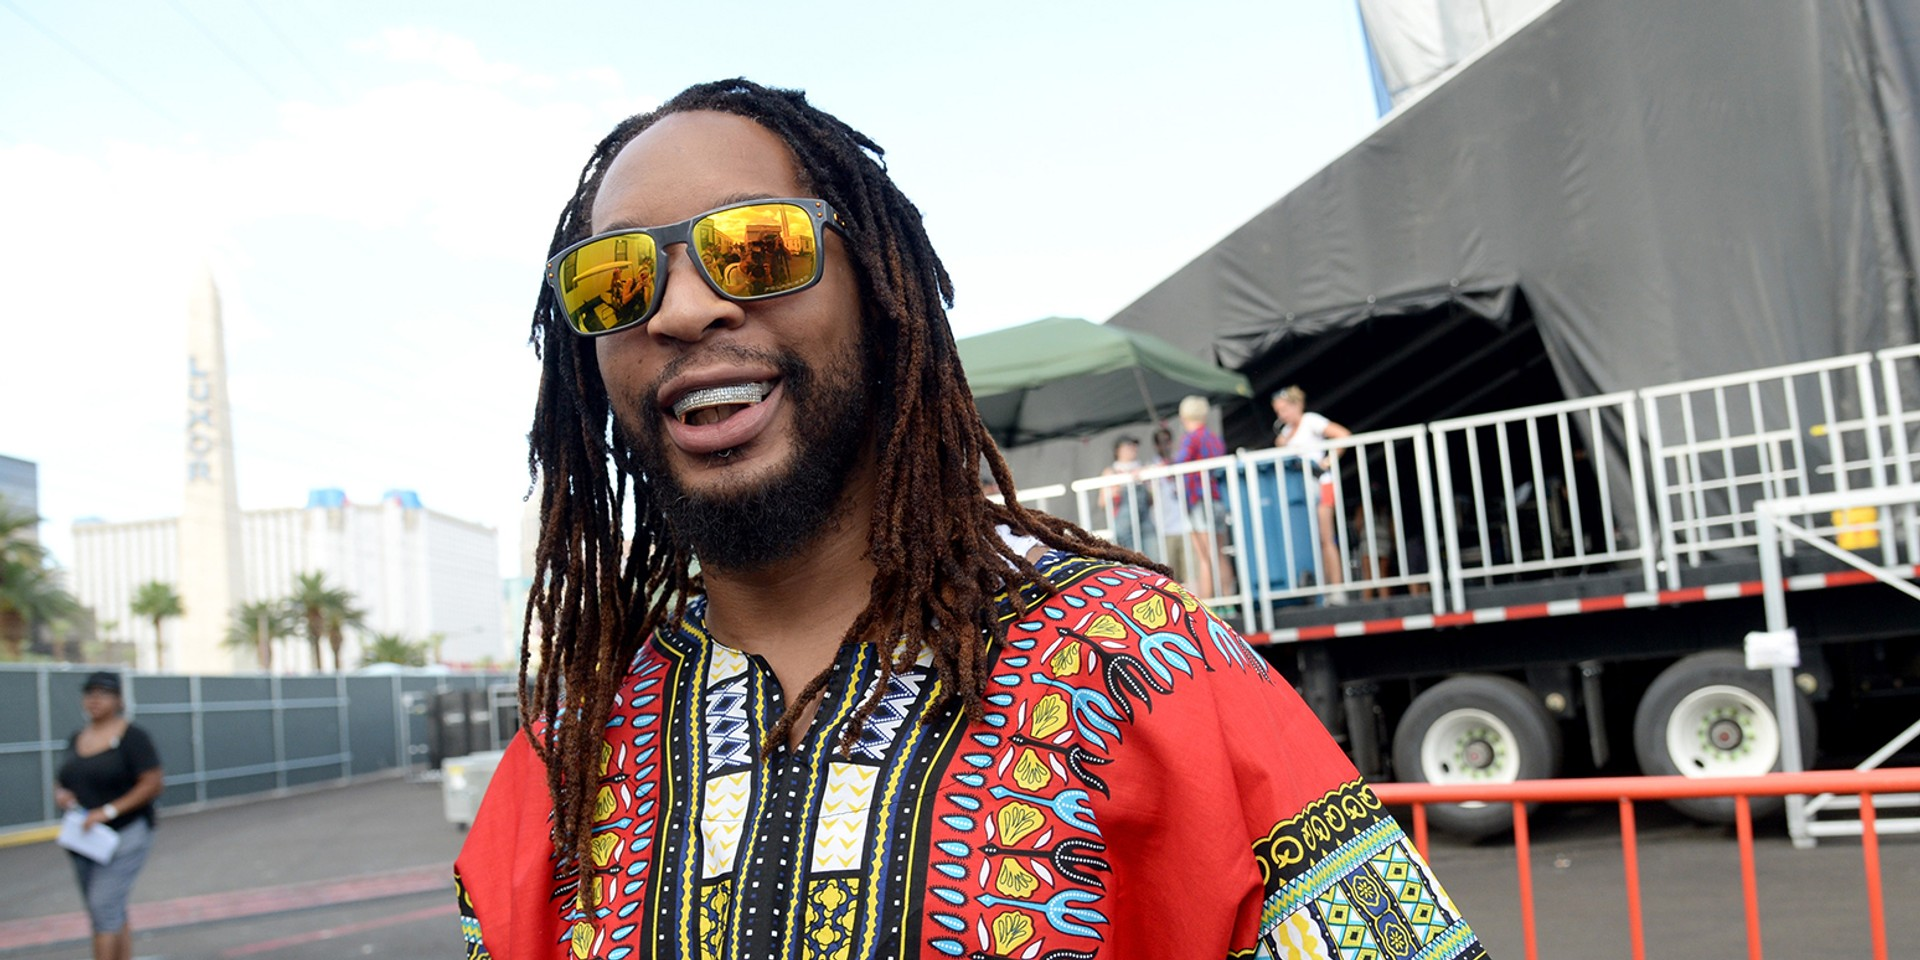 Lil Jon to play Marquee Singapore in August